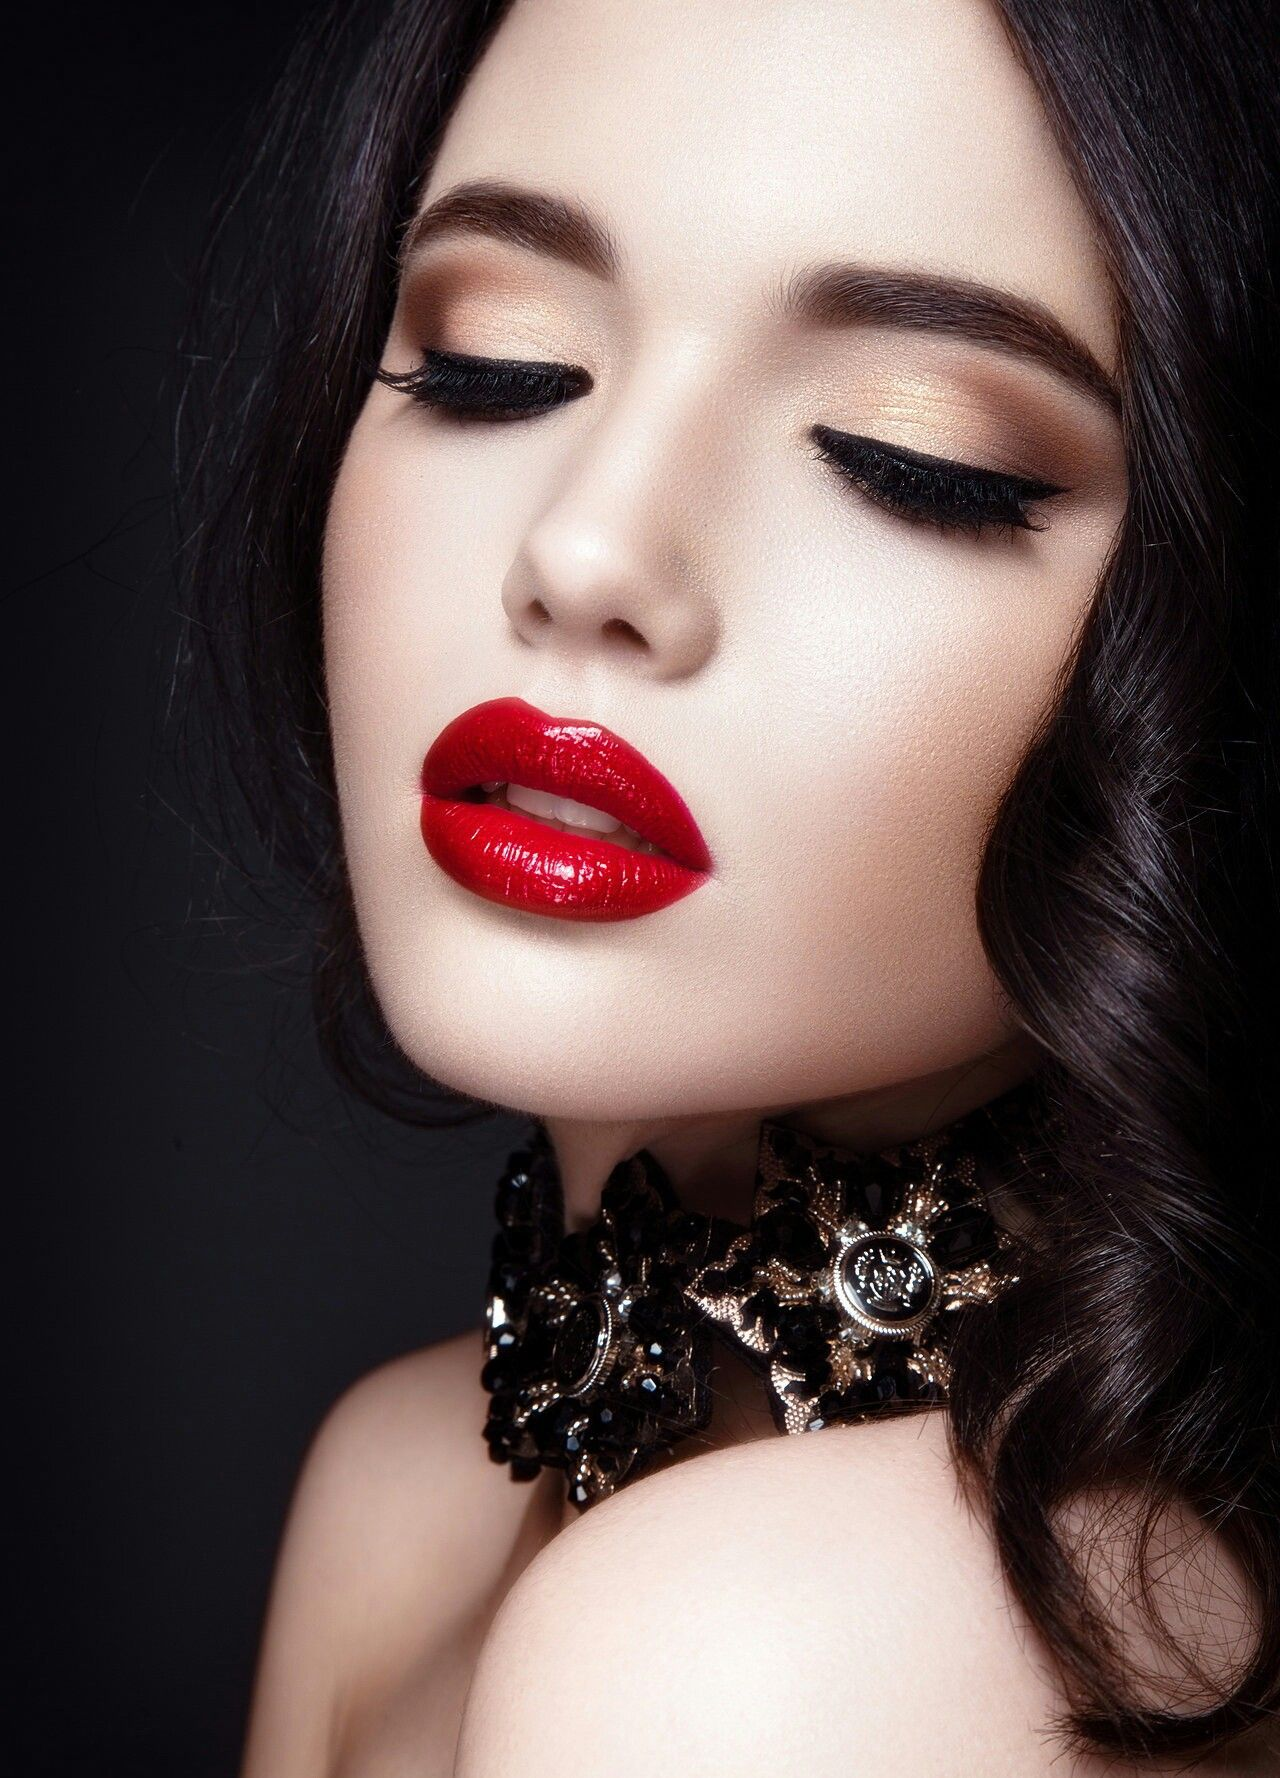 Pin by ༻ ℐ 𝒶𝓂 ♕ ℋ𝒾𝓈 ༺ on ♡°ReD LiPs°♡ Perfect red